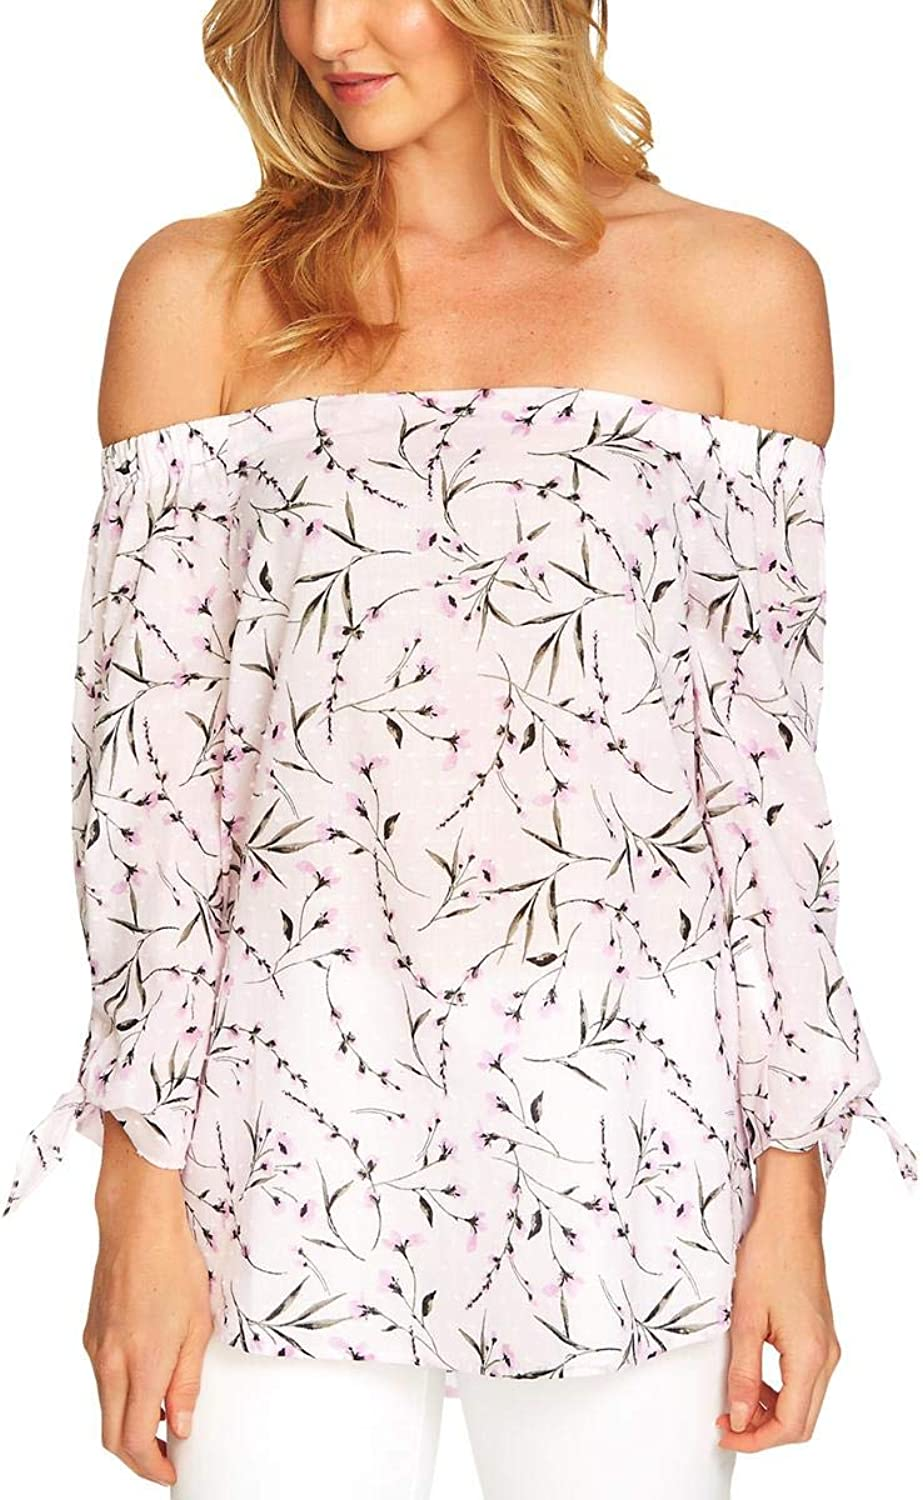 C&E CeCe Womens Frovence OffTheShoulder Floral Print Blouse